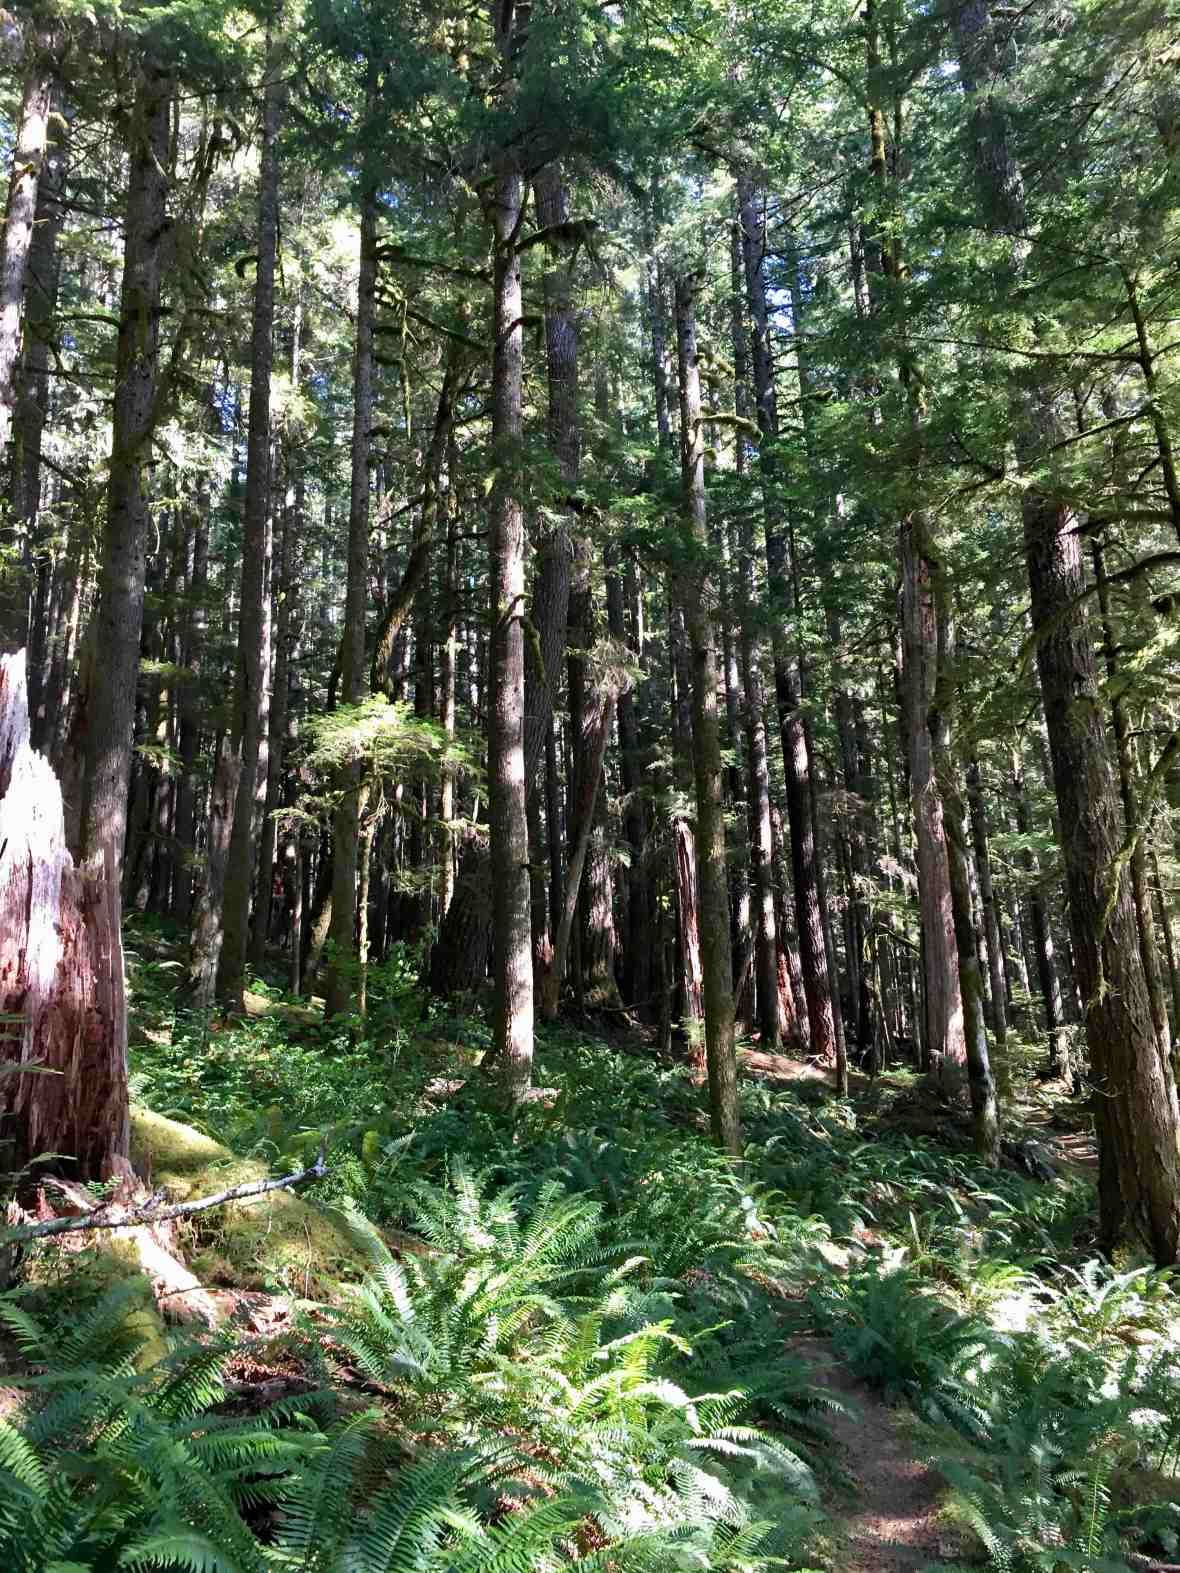 North Fork trail, Sol Duc Valley in Olympic National Park